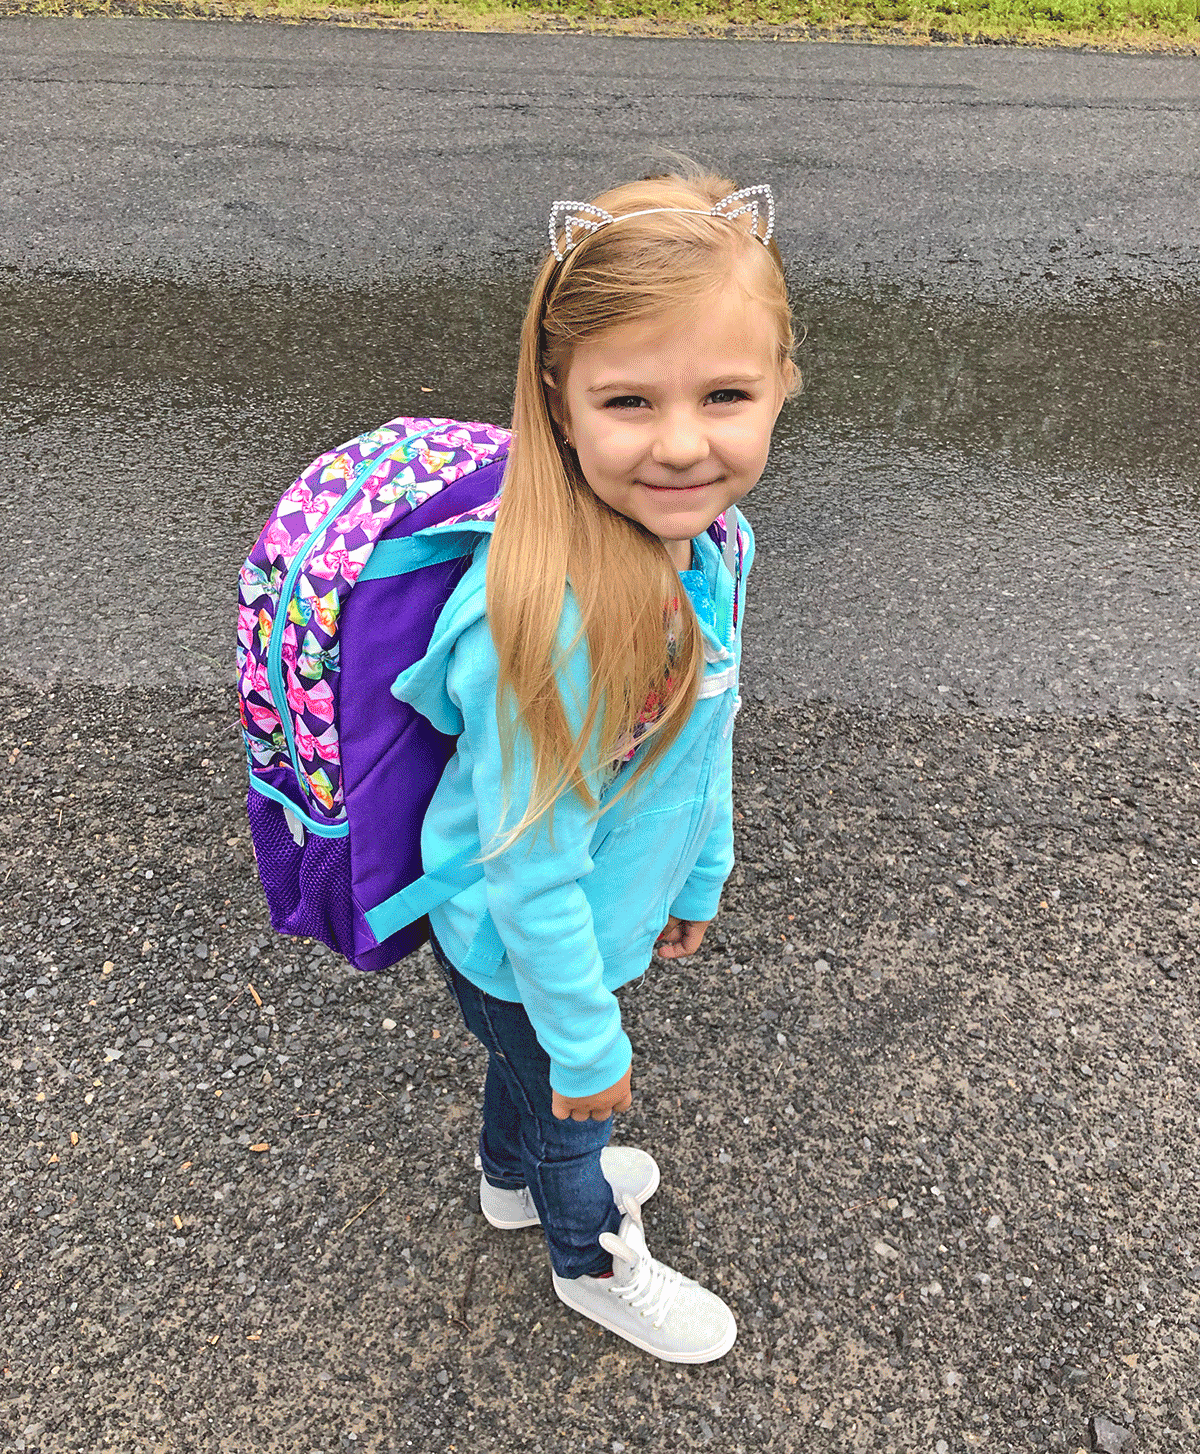 Kaisley Tatro of Norfolk waits for her first bus ride as a kindergartener at Norwood Norfolk Central School. Photo submitted by Hanna Tatro.